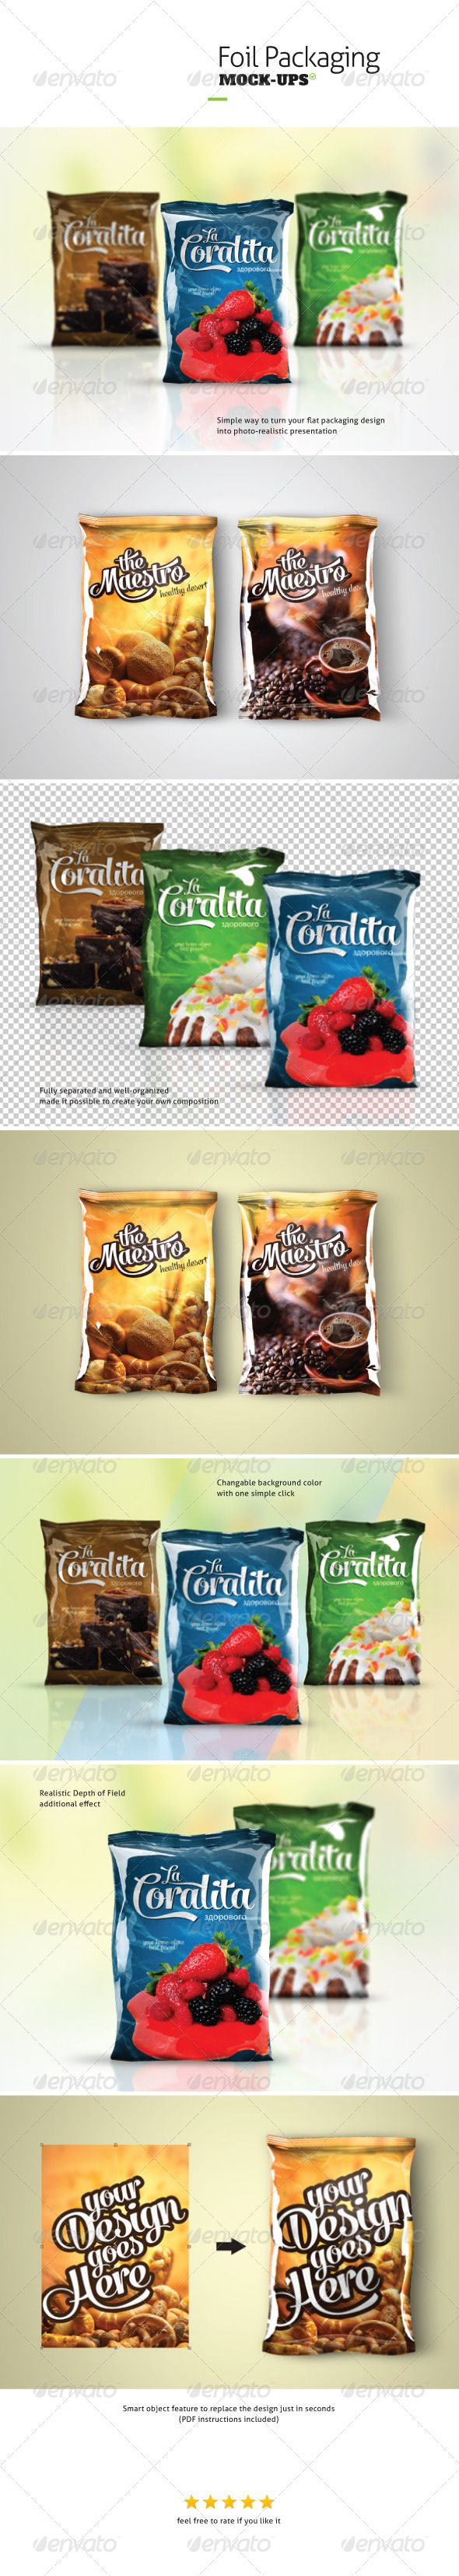 Foil Packaging Mock-ups by CodeID Foil Packaging Mock-ups Useful psd files to turn flat packaging design into photo realistic 3D display. They could be used to seve